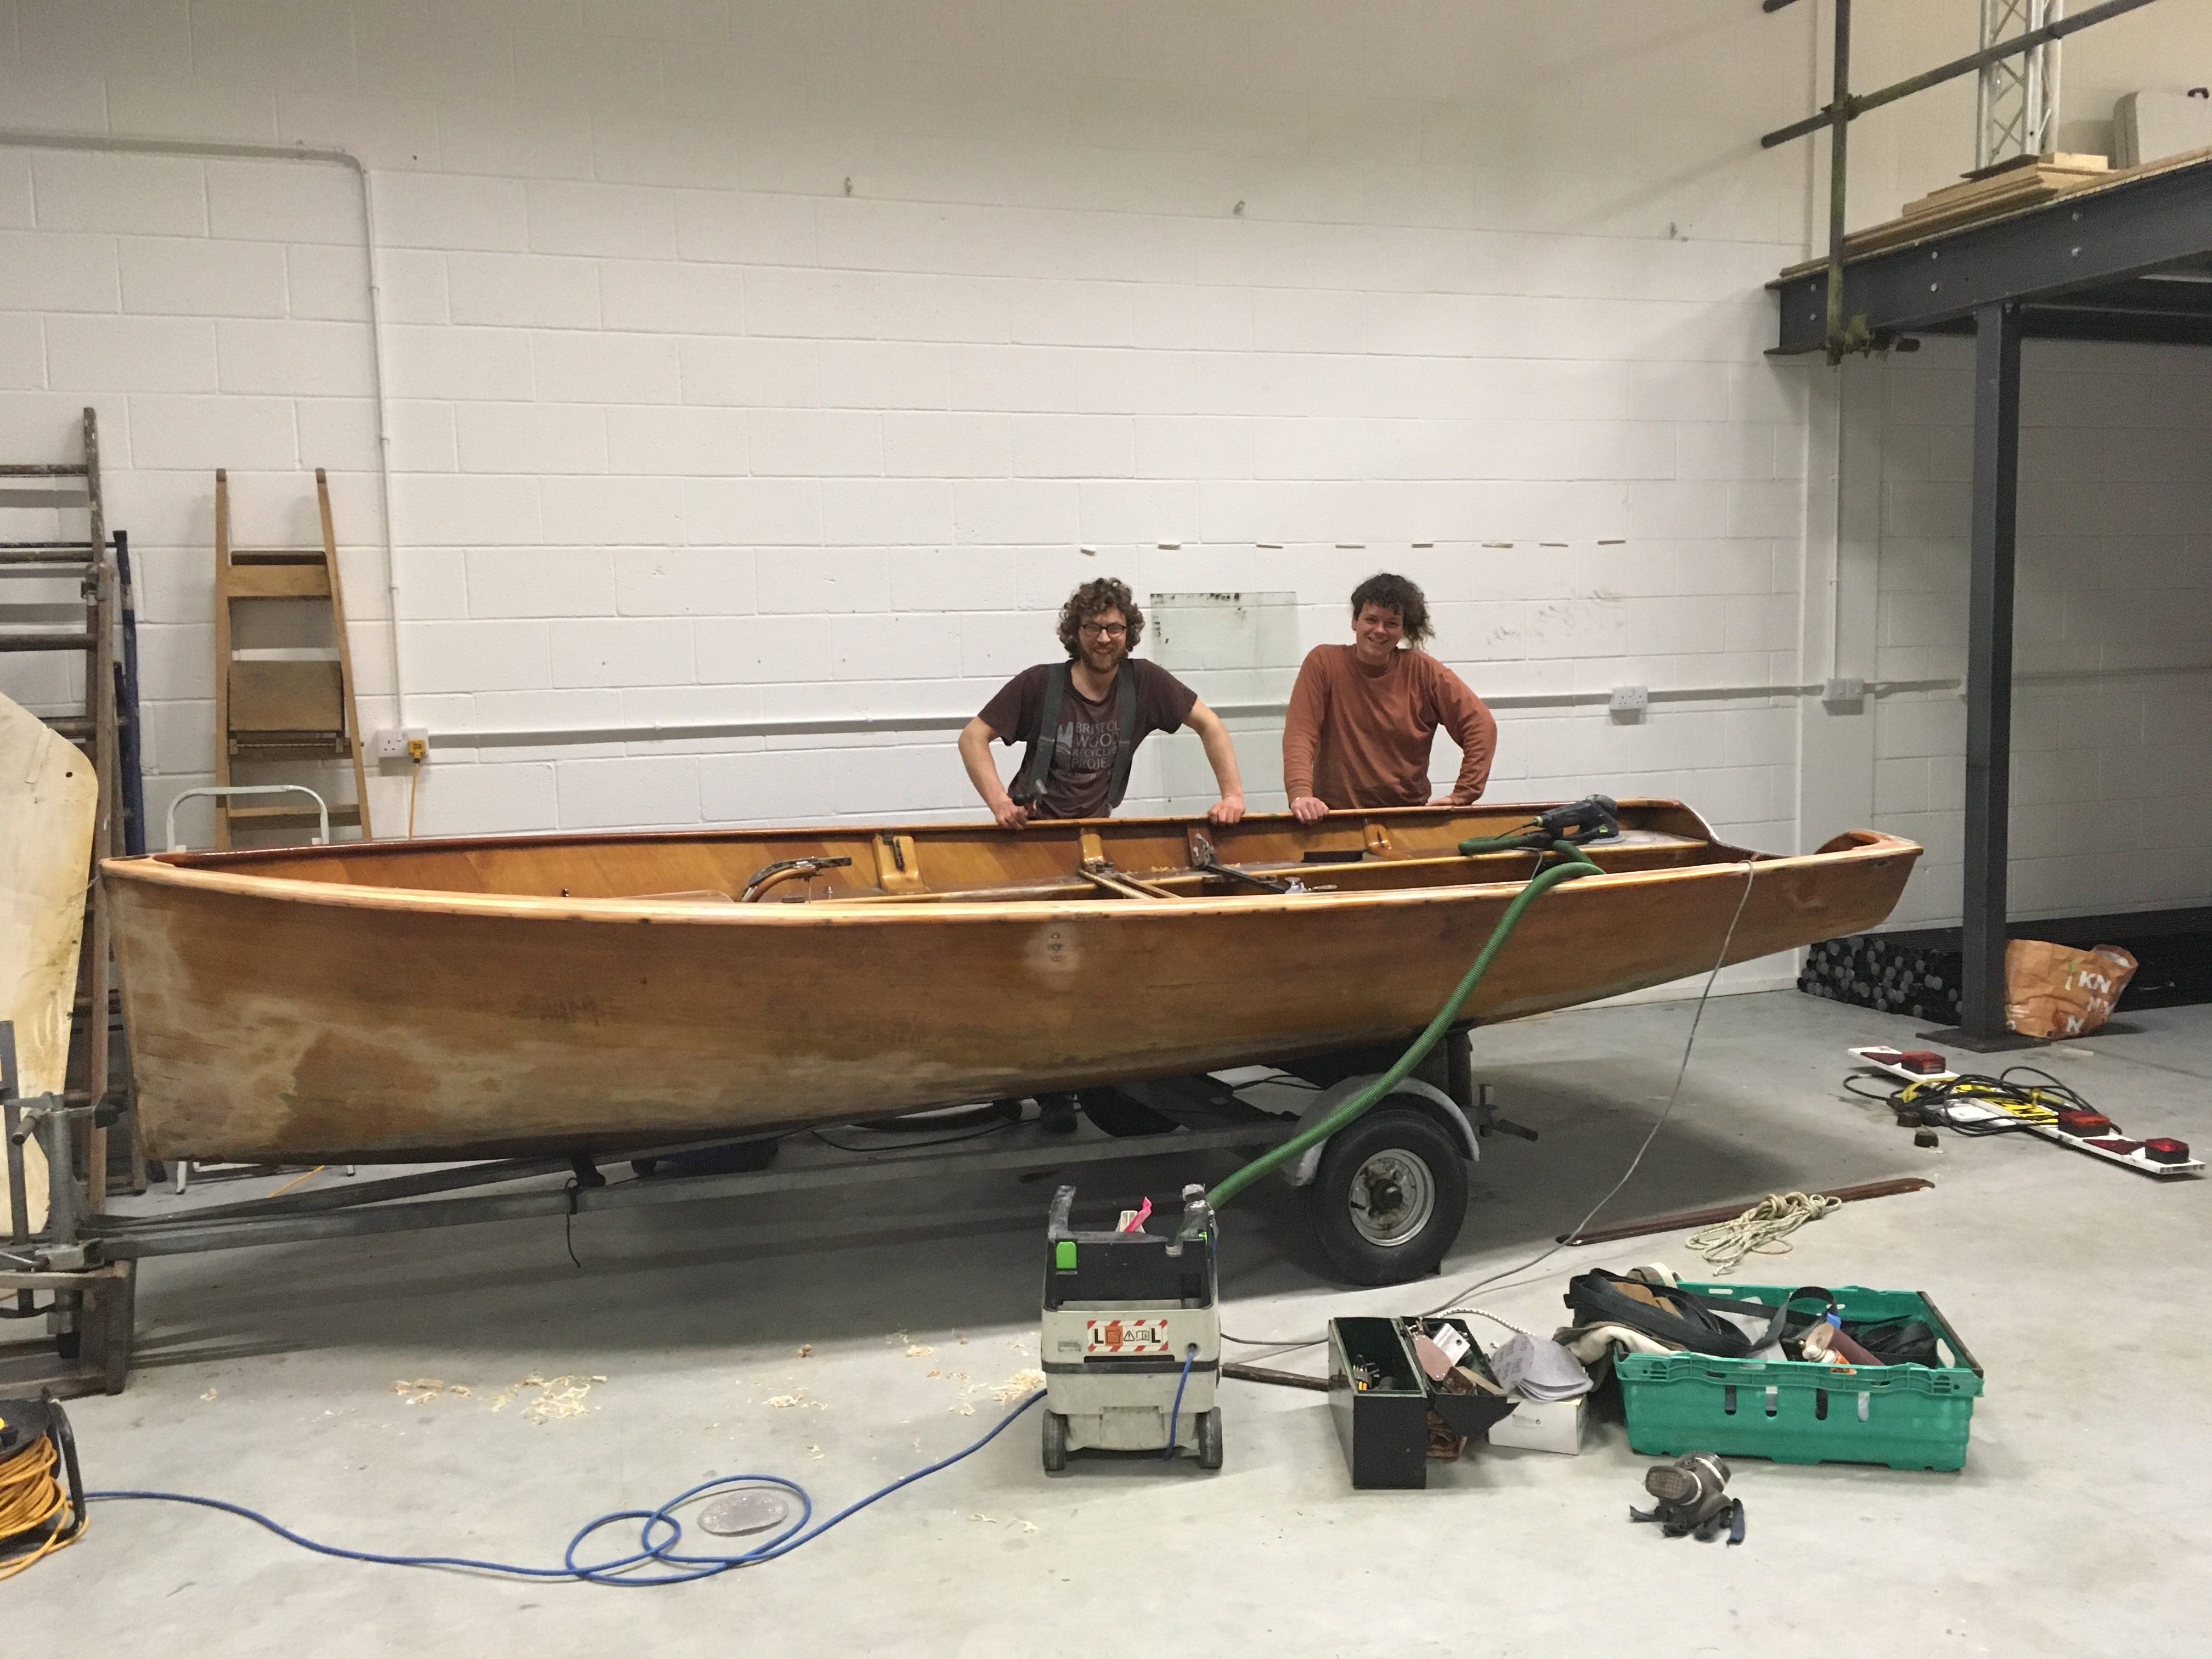 Boat making in the Production Space